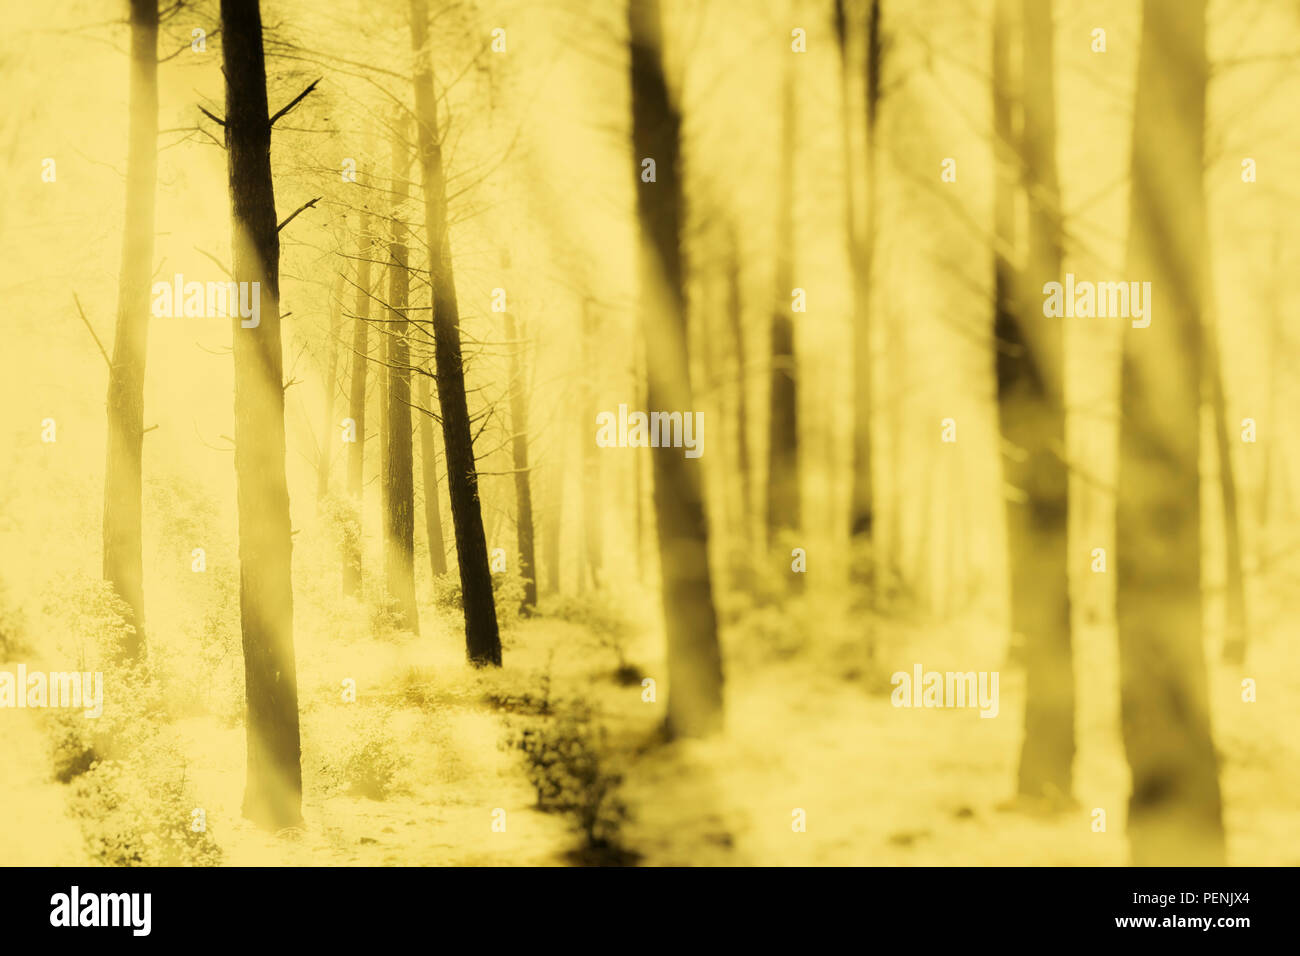 Conifer forest and snow. - Stock Image